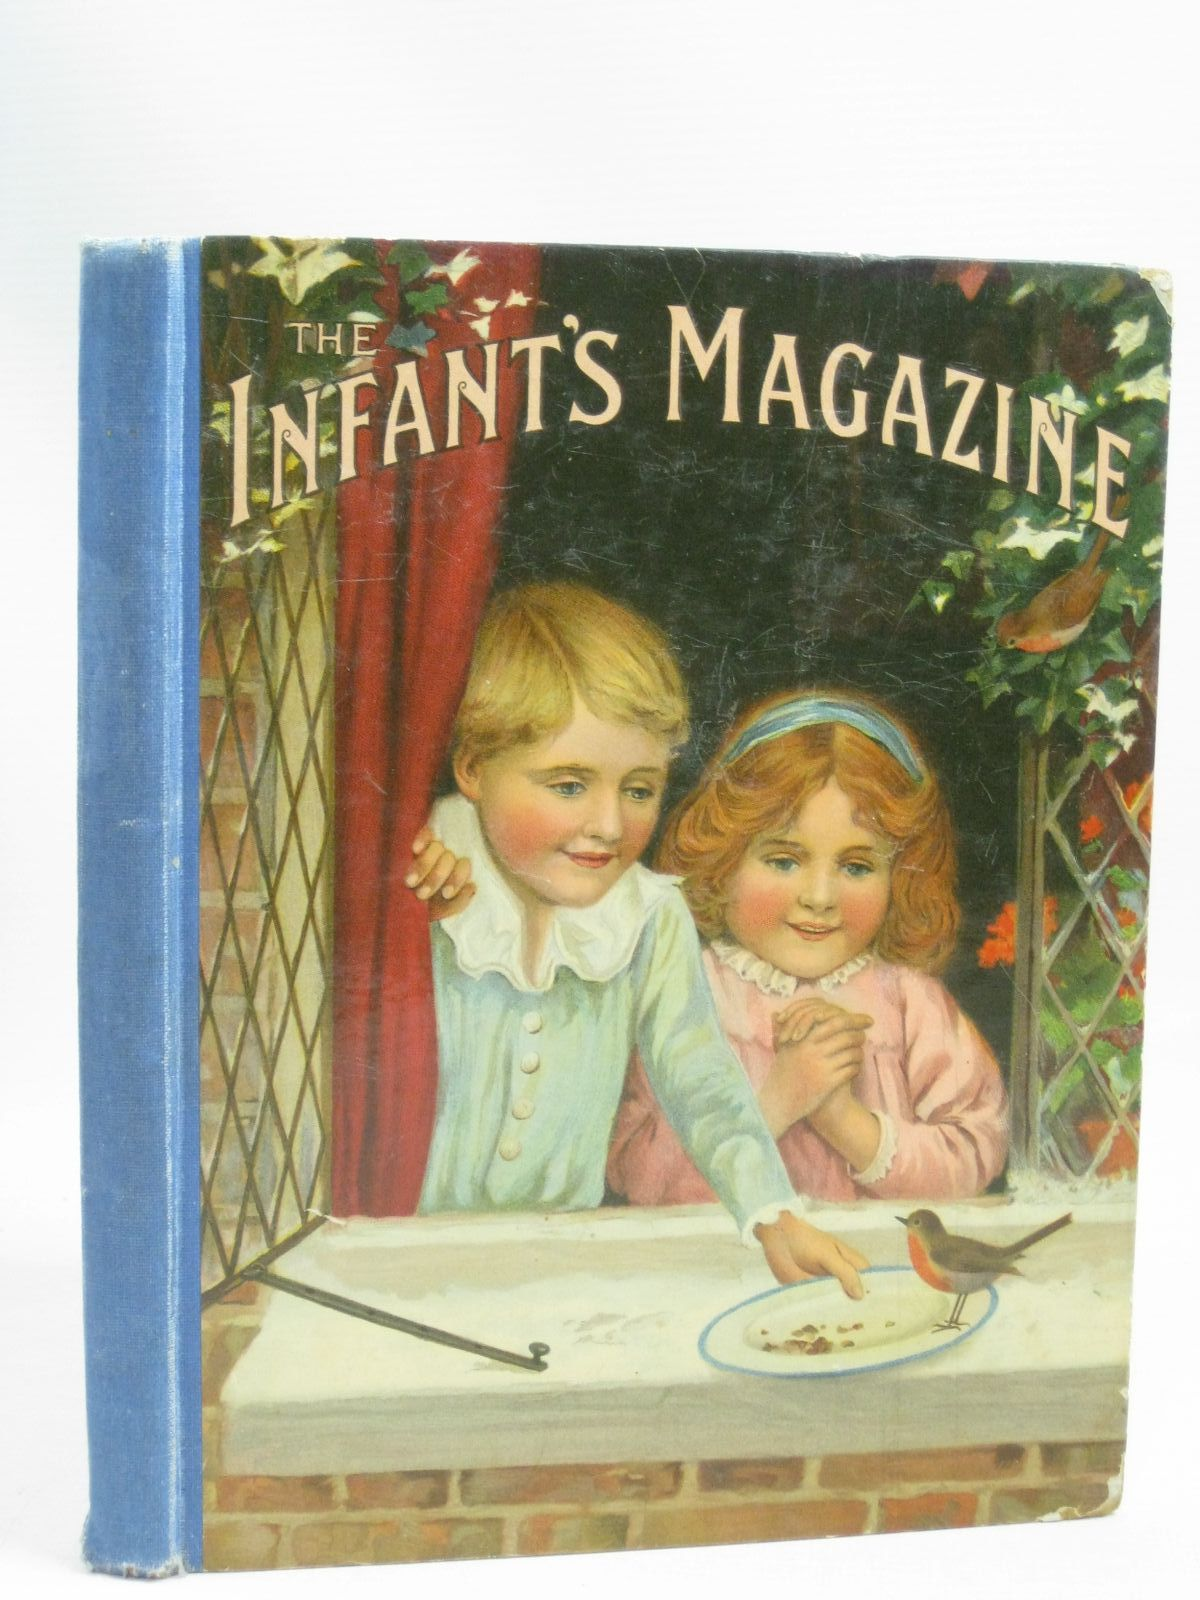 Photo of THE INFANTS' MAGAZINE FOR 1915 written by Lea, John et al, illustrated by Bowley, A.L. Wain, Louis Lambert, H.G.C. Marsh et al., published by S.W. Partridge & Co. Ltd. (STOCK CODE: 1405281)  for sale by Stella & Rose's Books